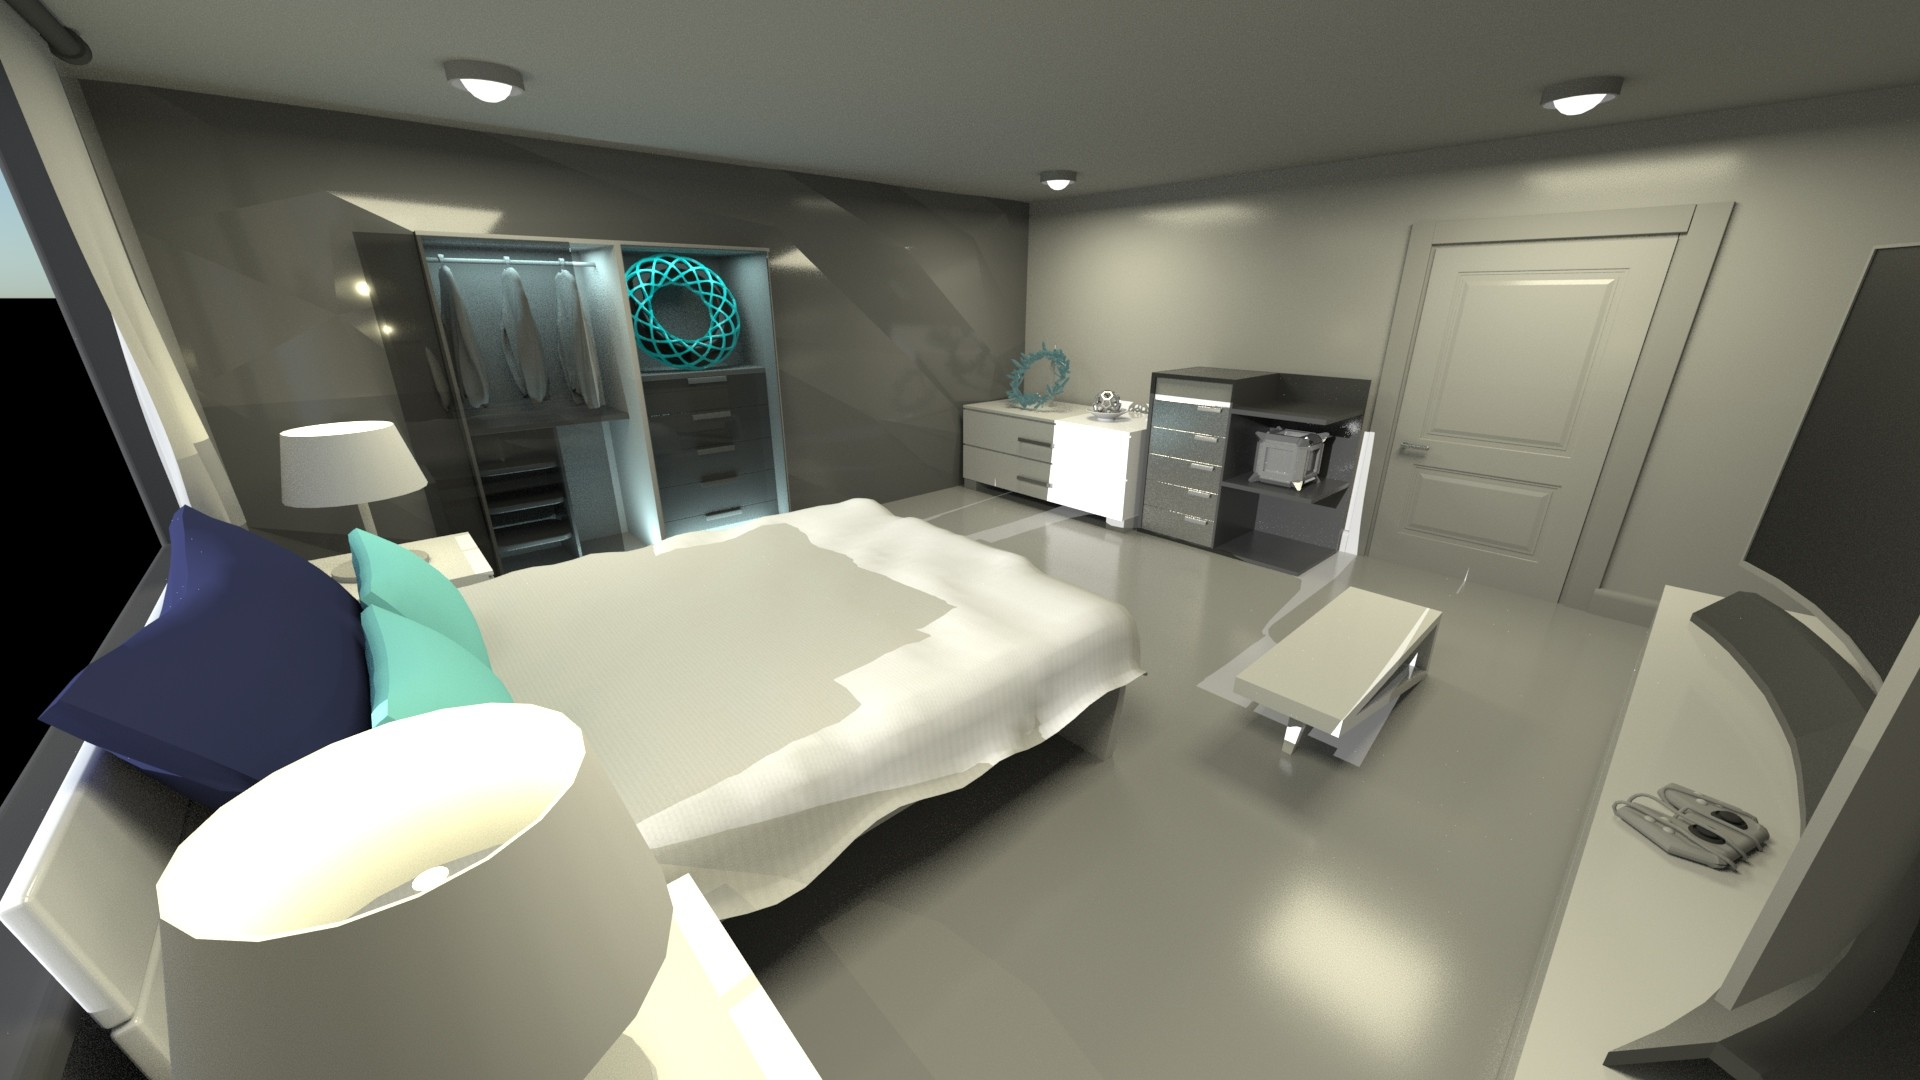 Small Modern Futuristic Room